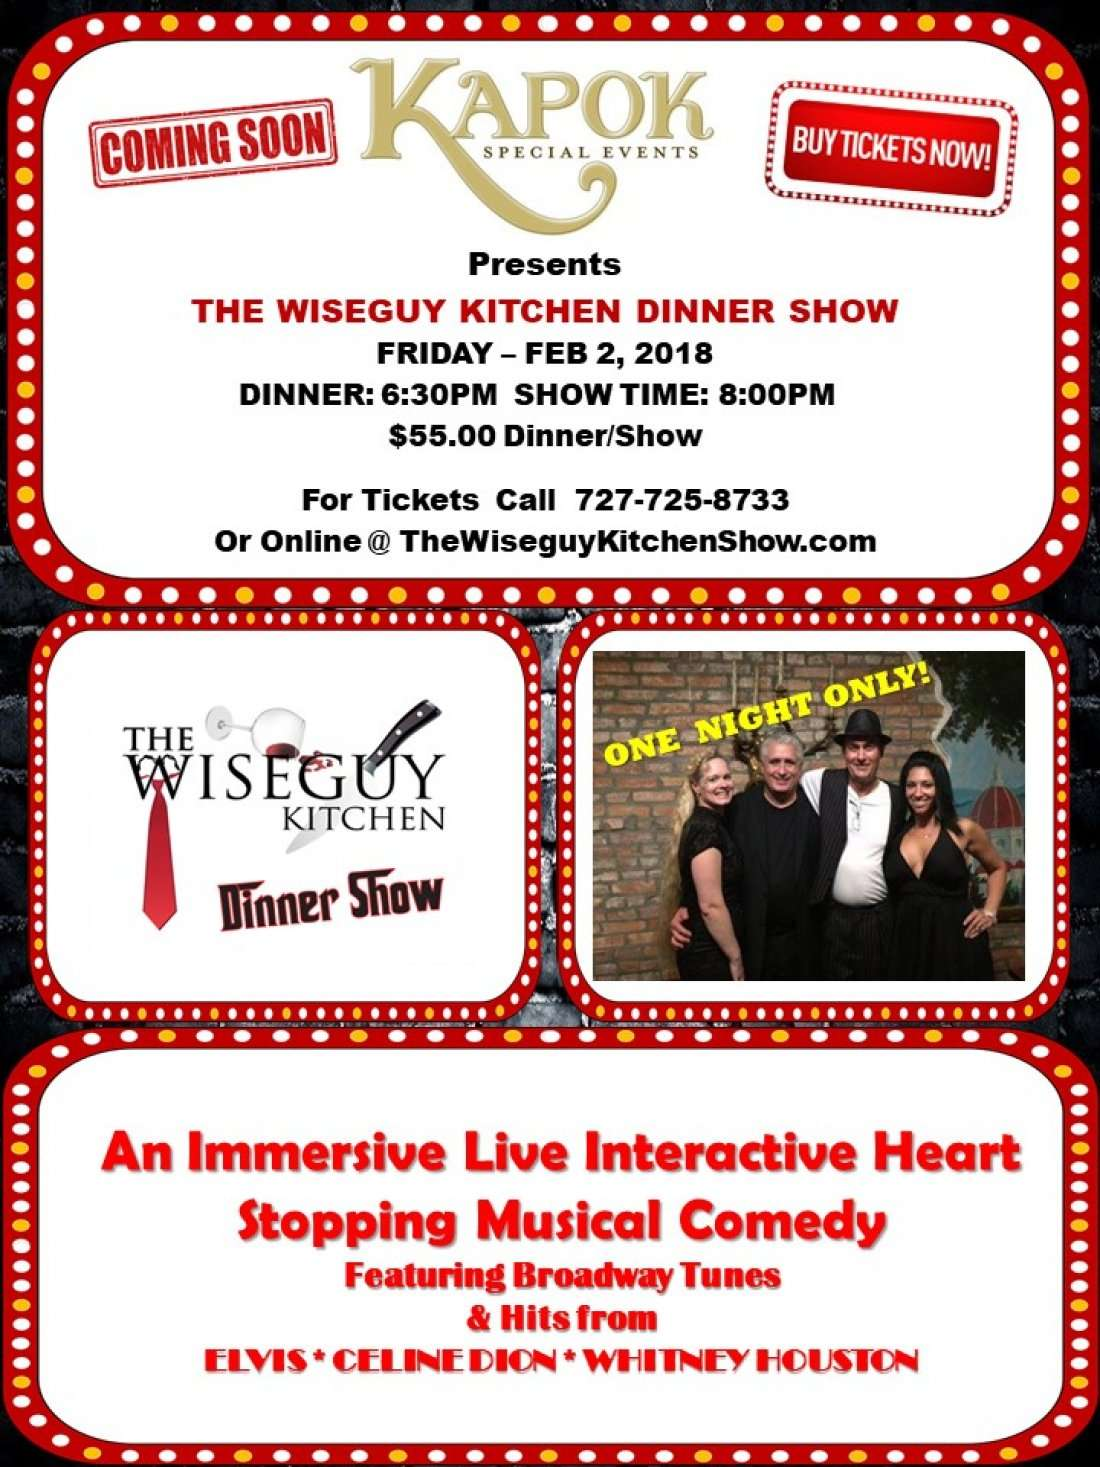 THE WISEGUY KITCHEN SHOW